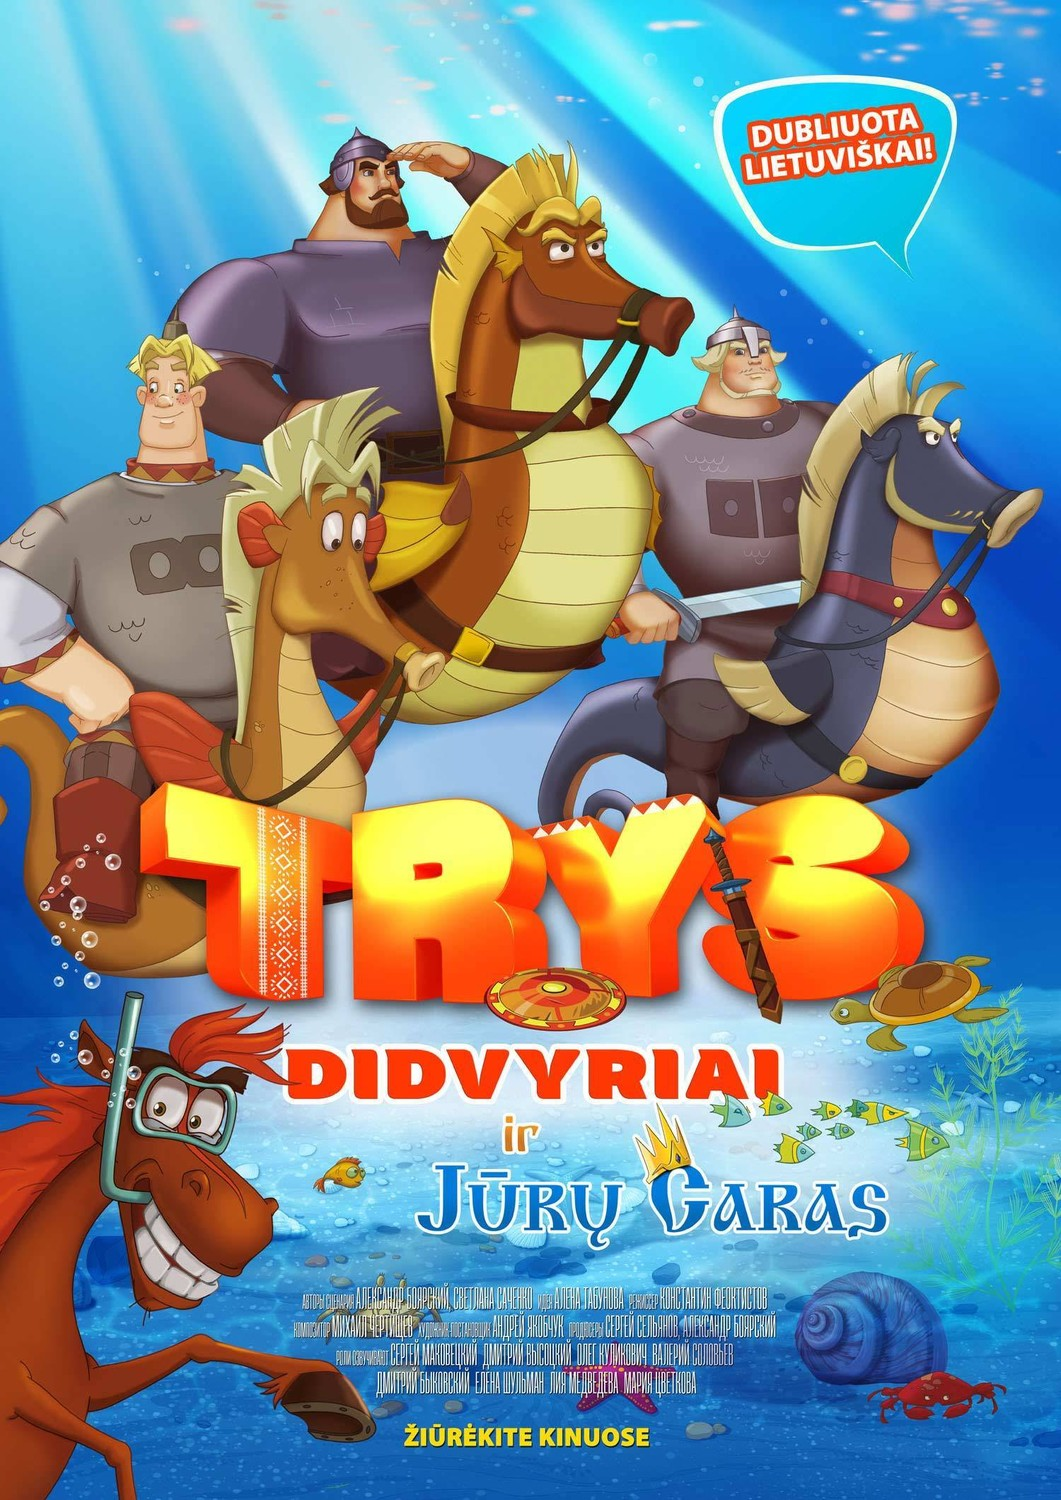 Trys didvyriai ir Jūrų caras / Three heroes and the King of the Sea (2017)